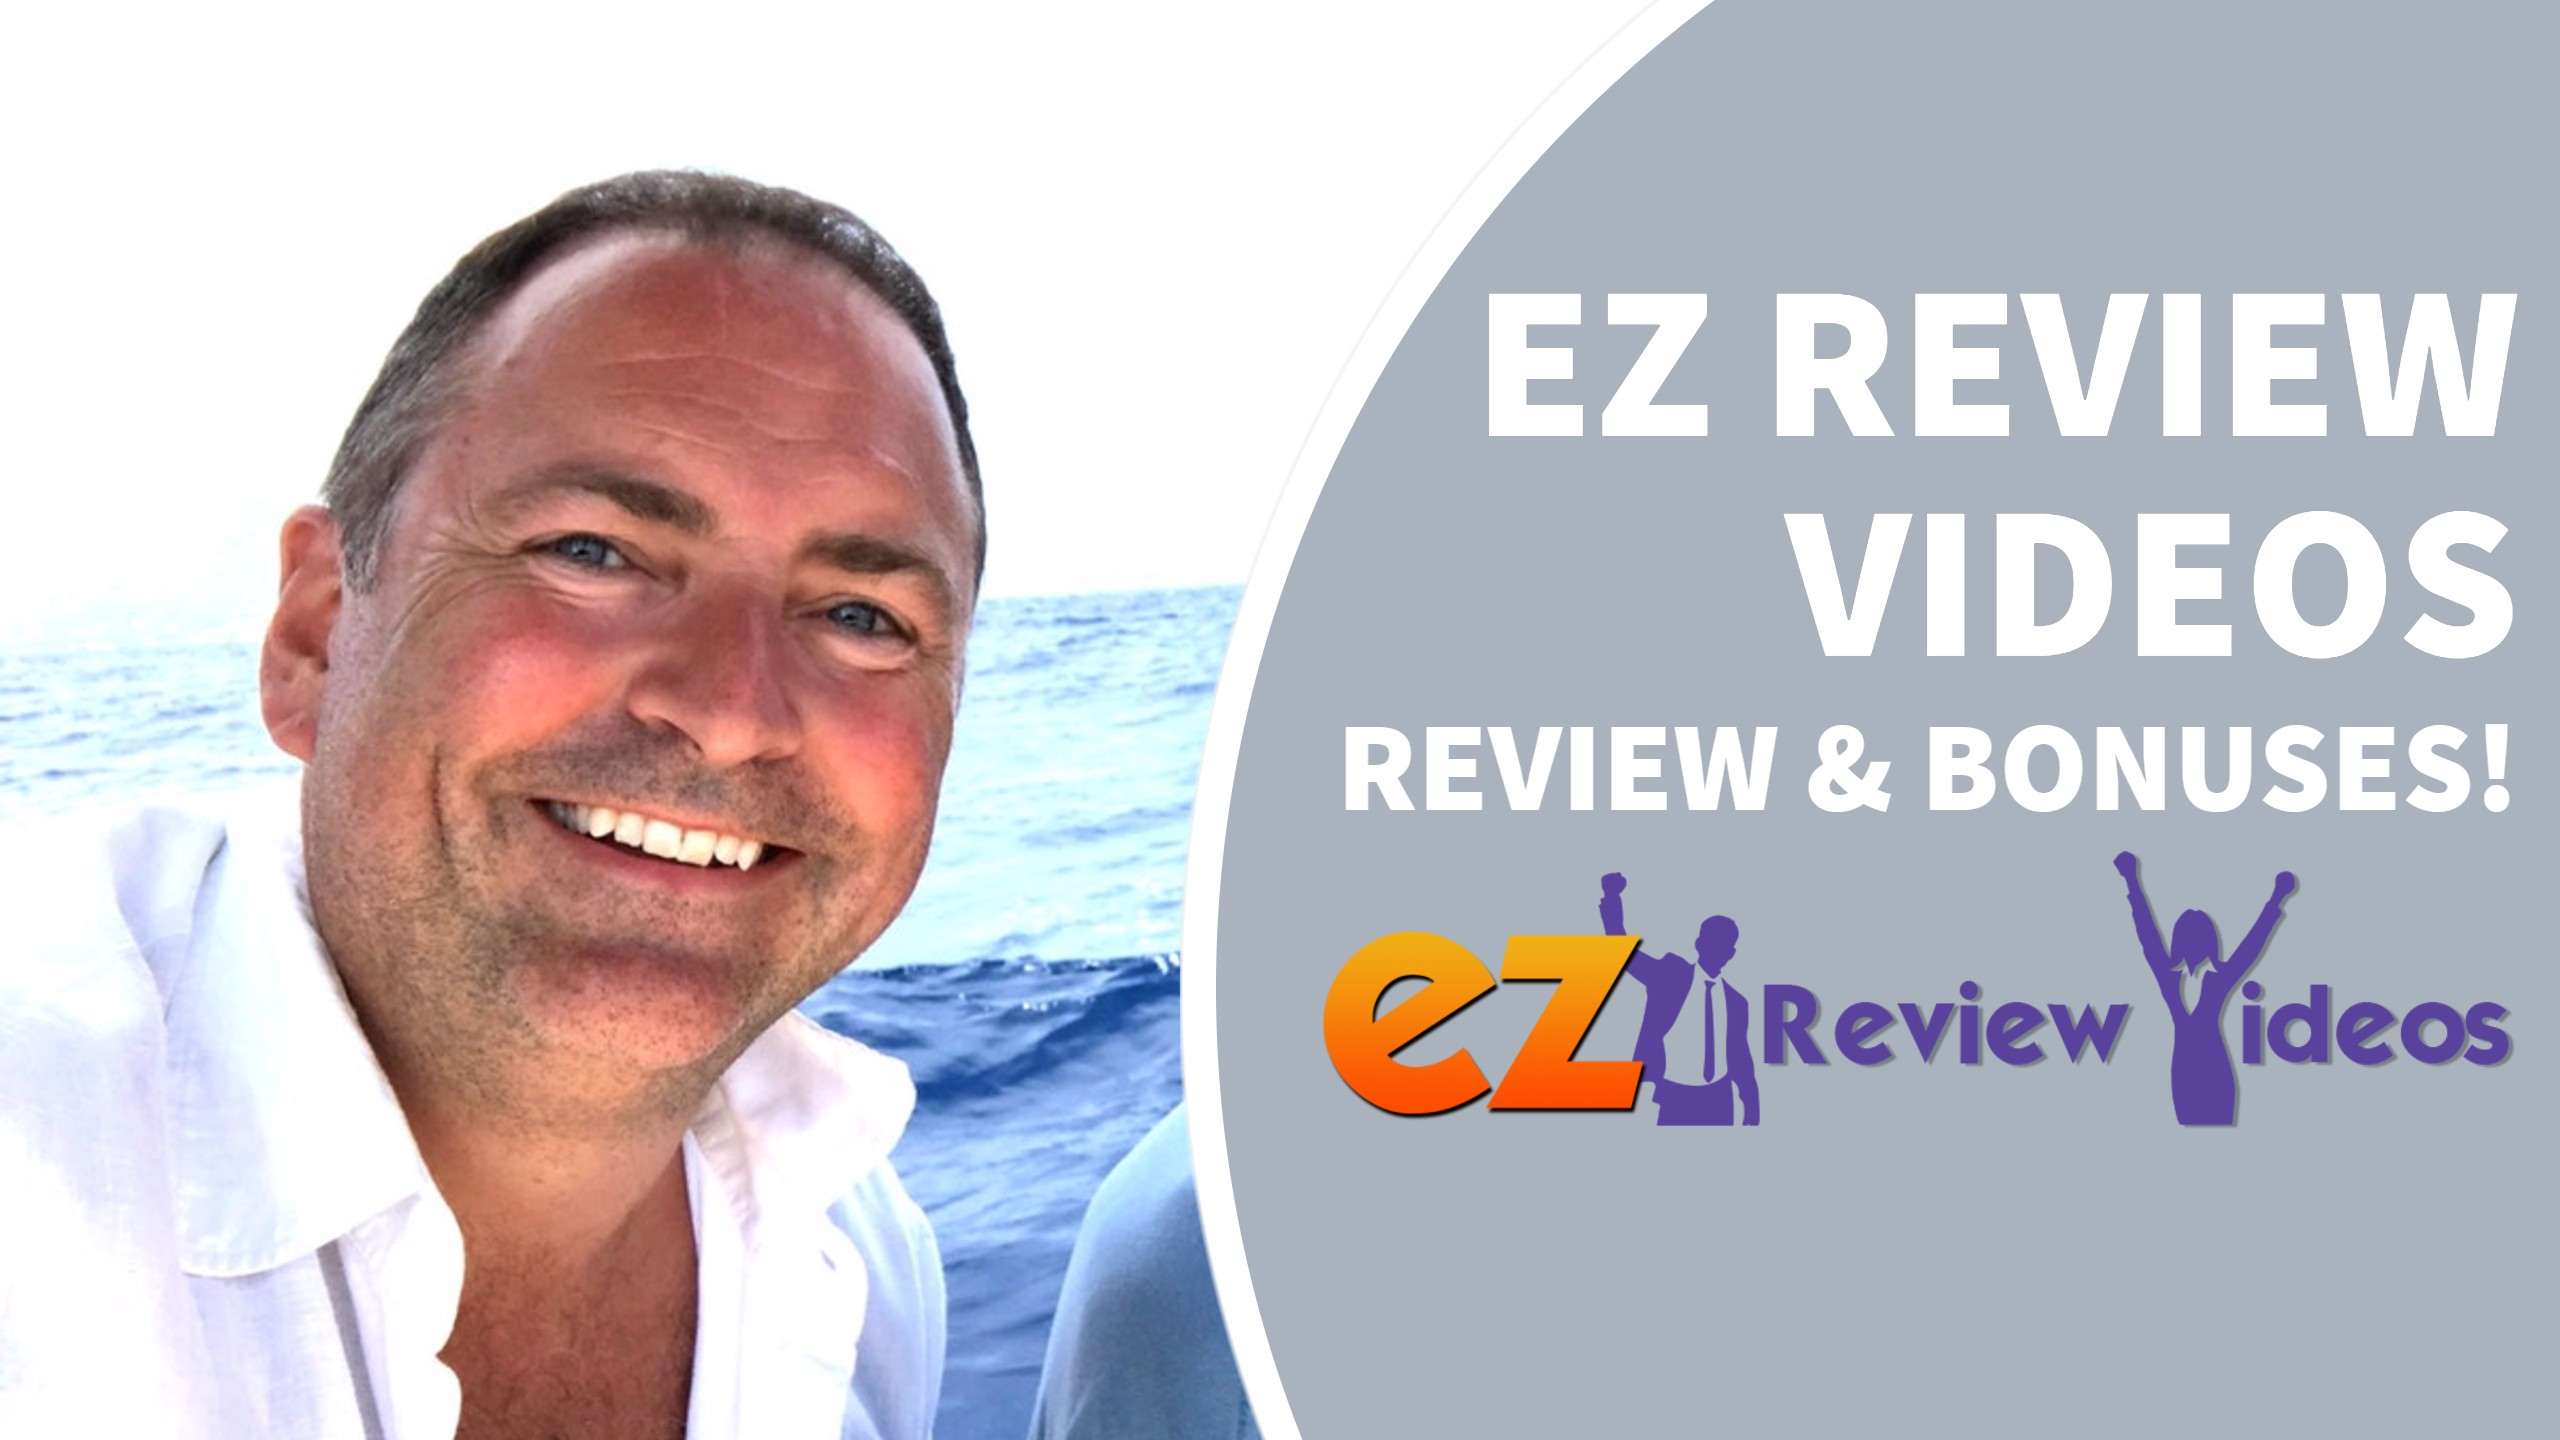 EZ Review Videos Review